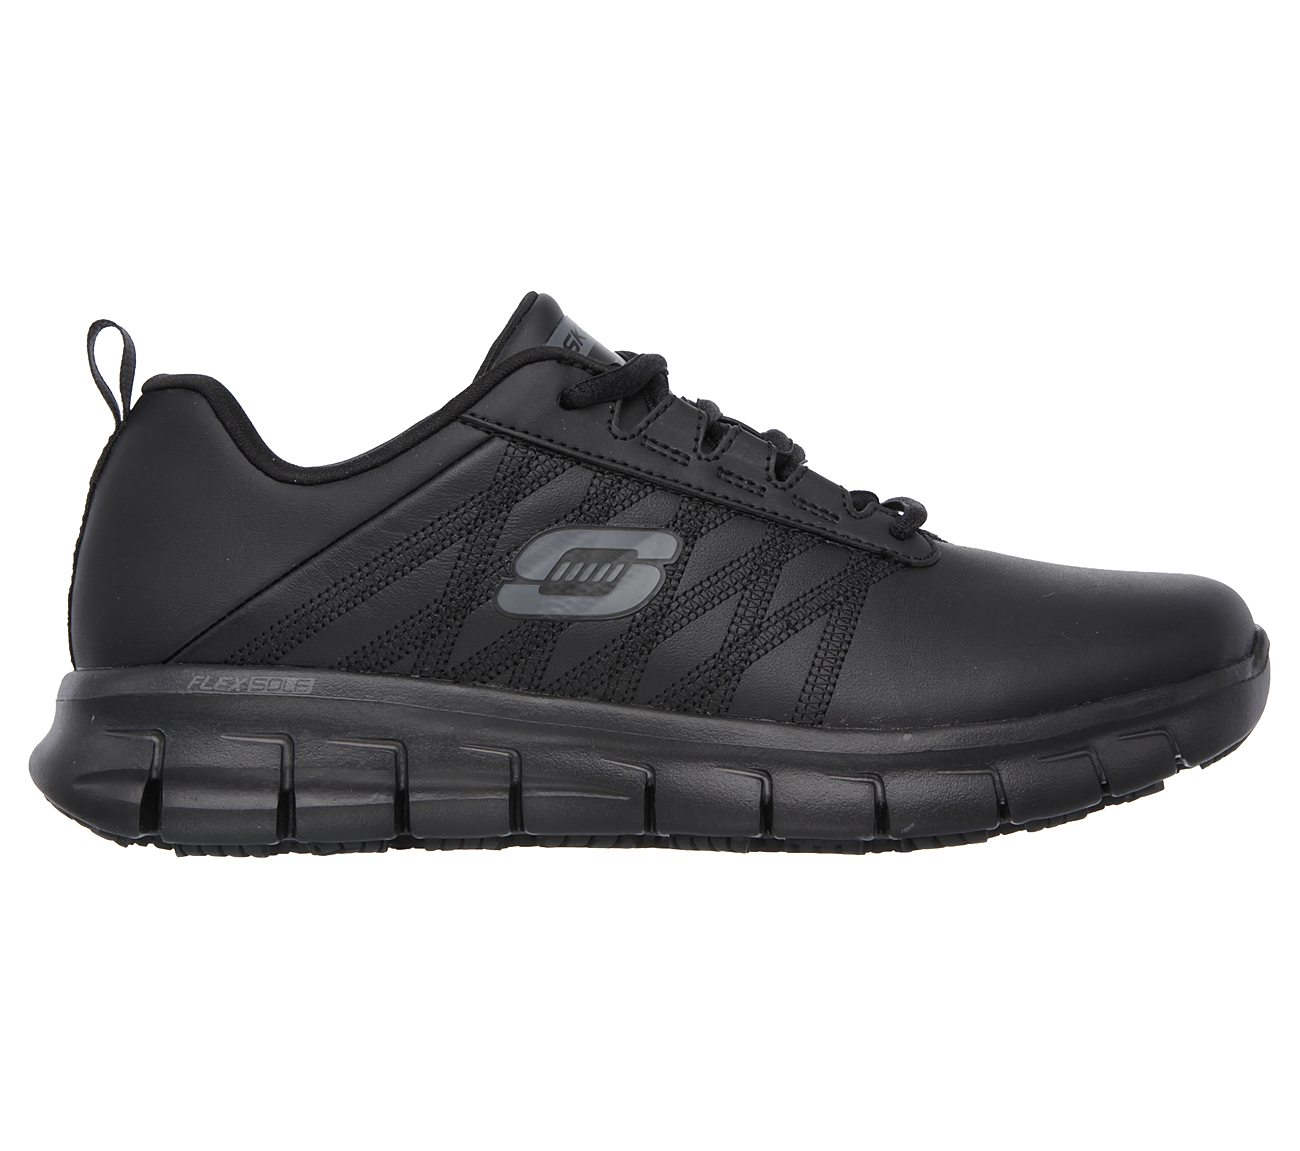 skechers work relaxed fit sure track erath slip resistant